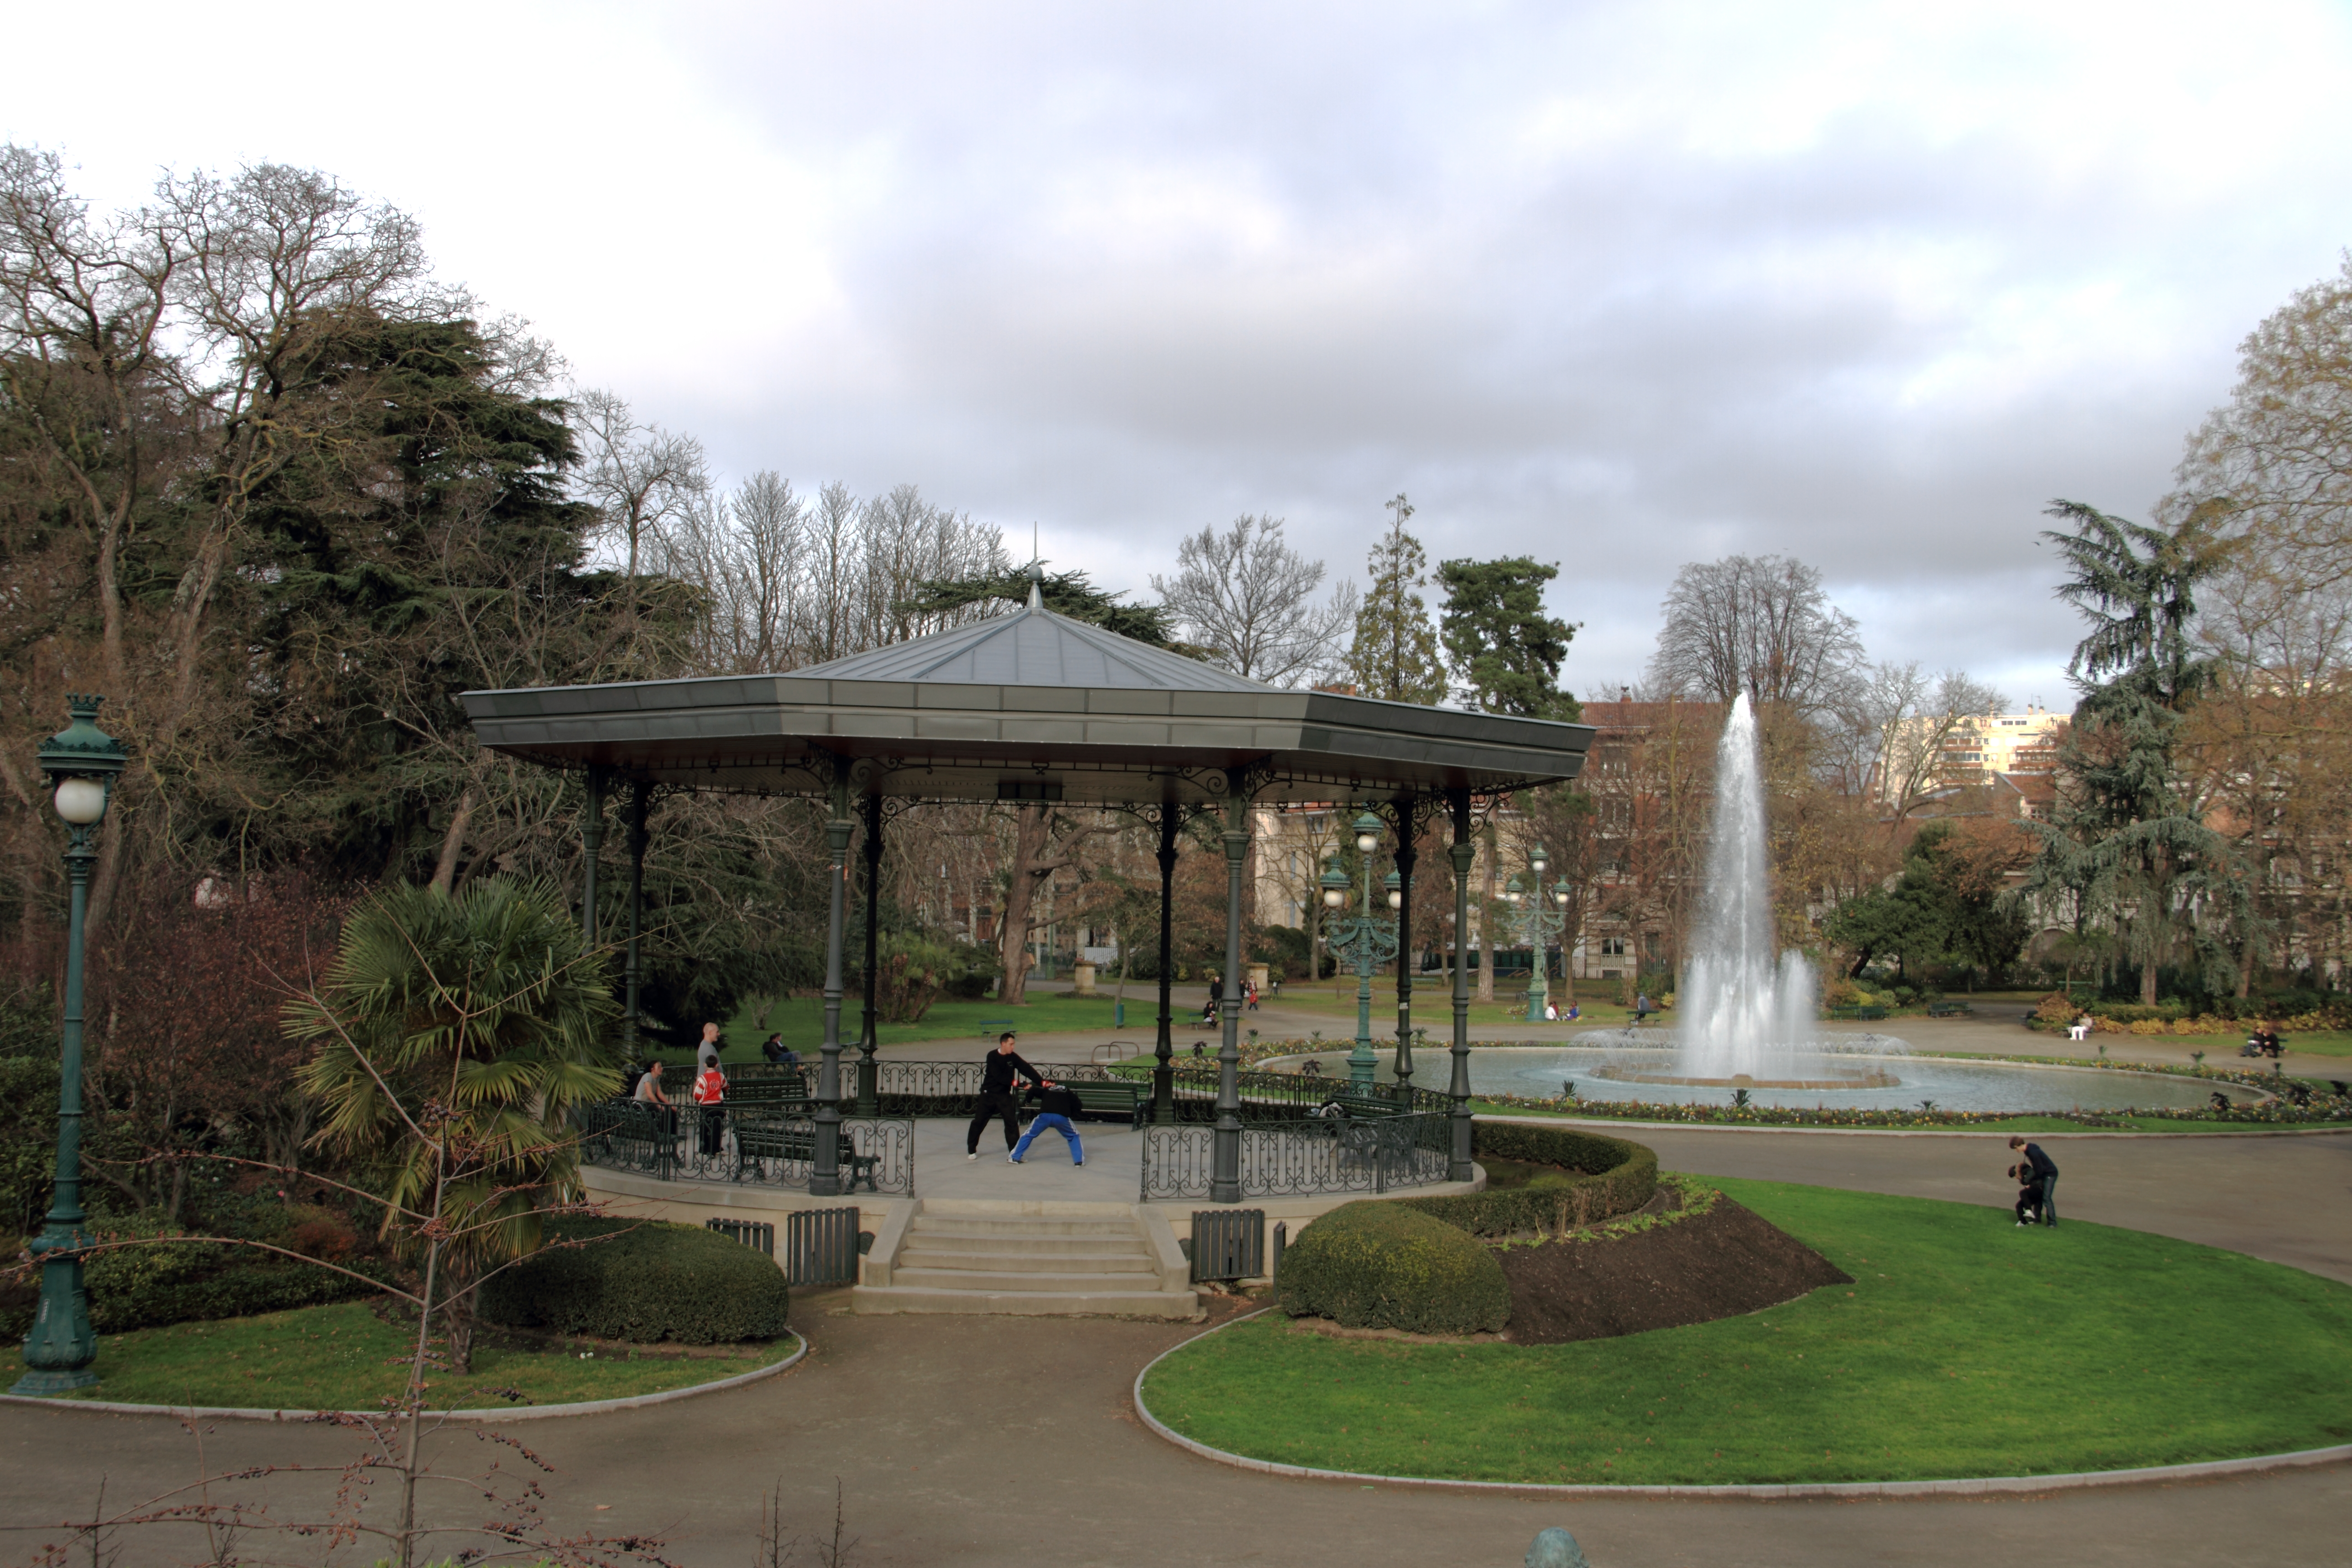 File:Jardin du Grand Rond, Toulouse 04.JPG - Wikimedia Commons